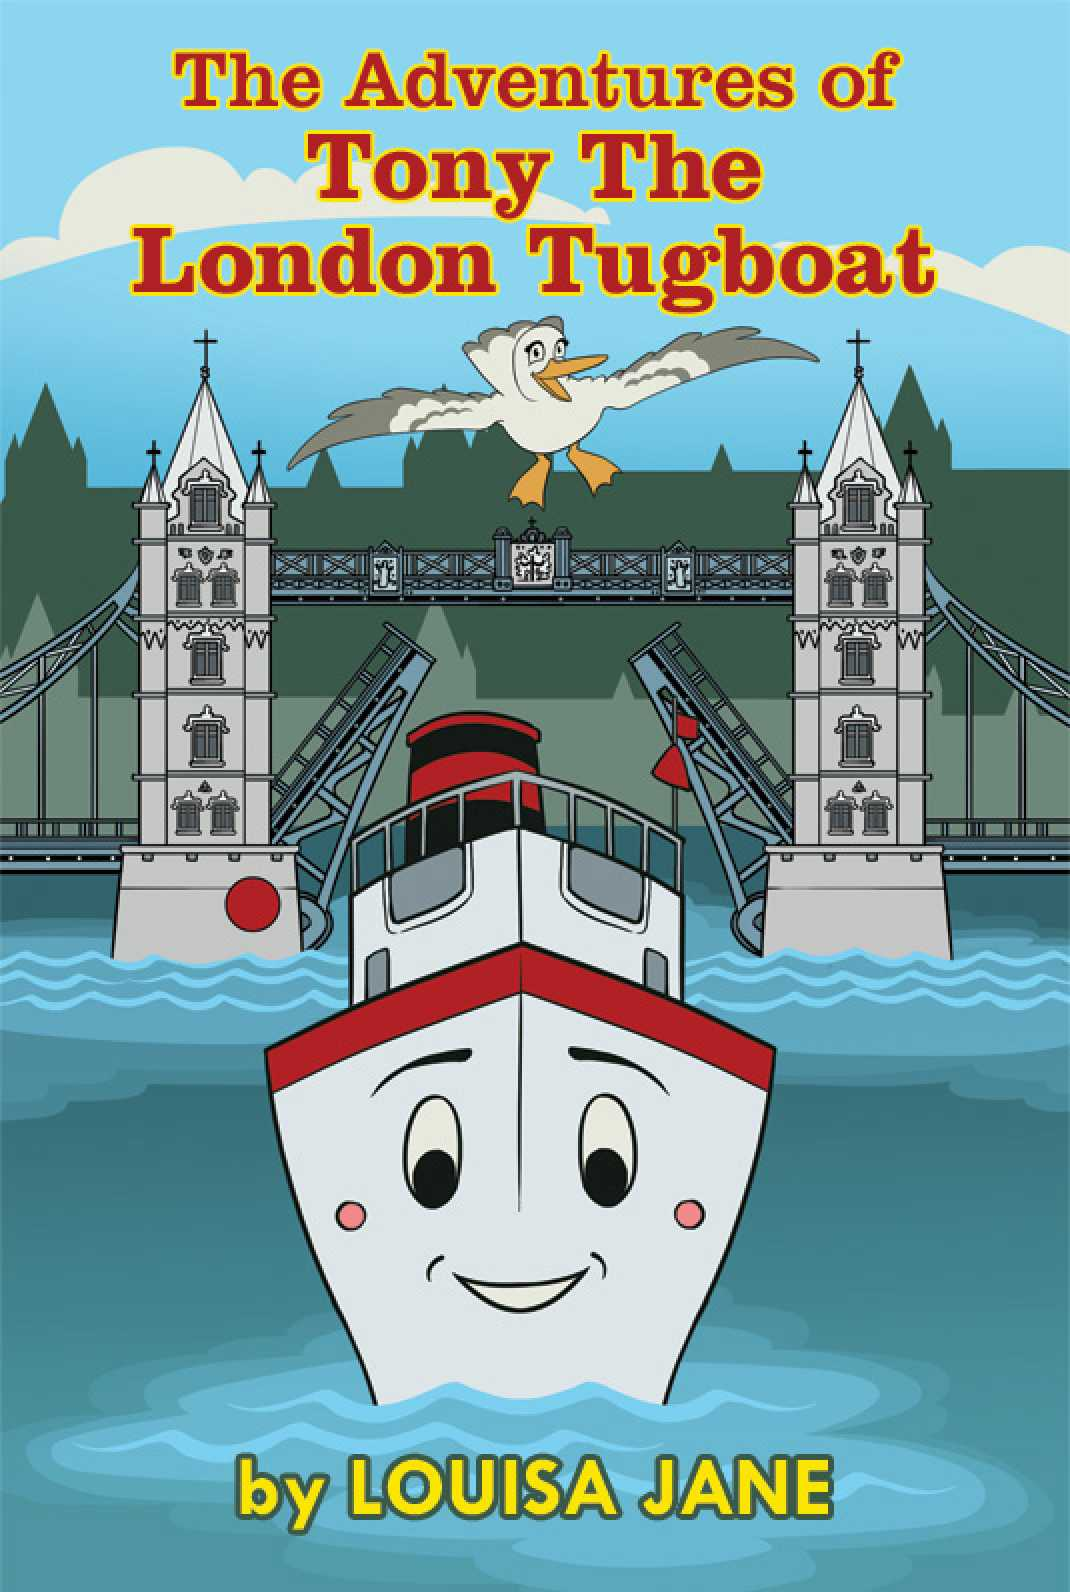 The Adventures Of Tony The London Tugboat